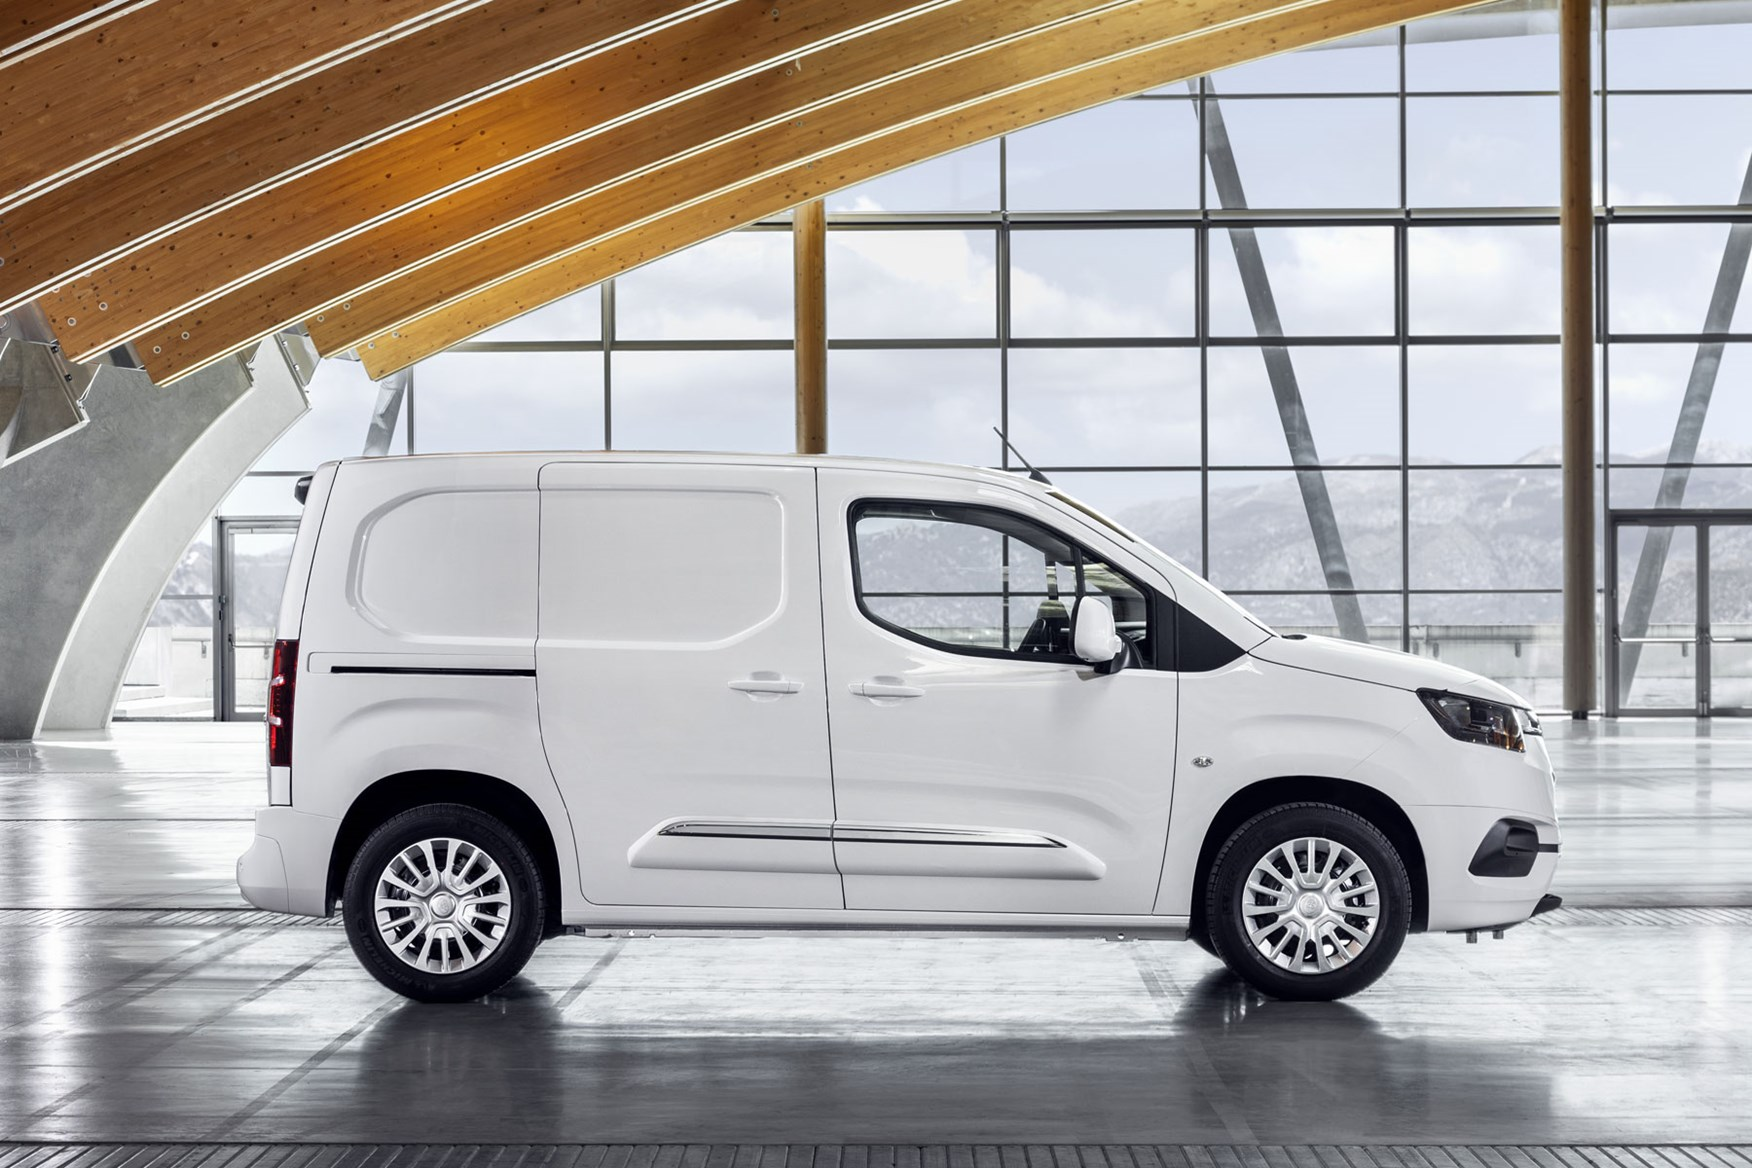 ecc583b076 Toyota Proace City - Toyota s new small van Toyota Proace City - side view